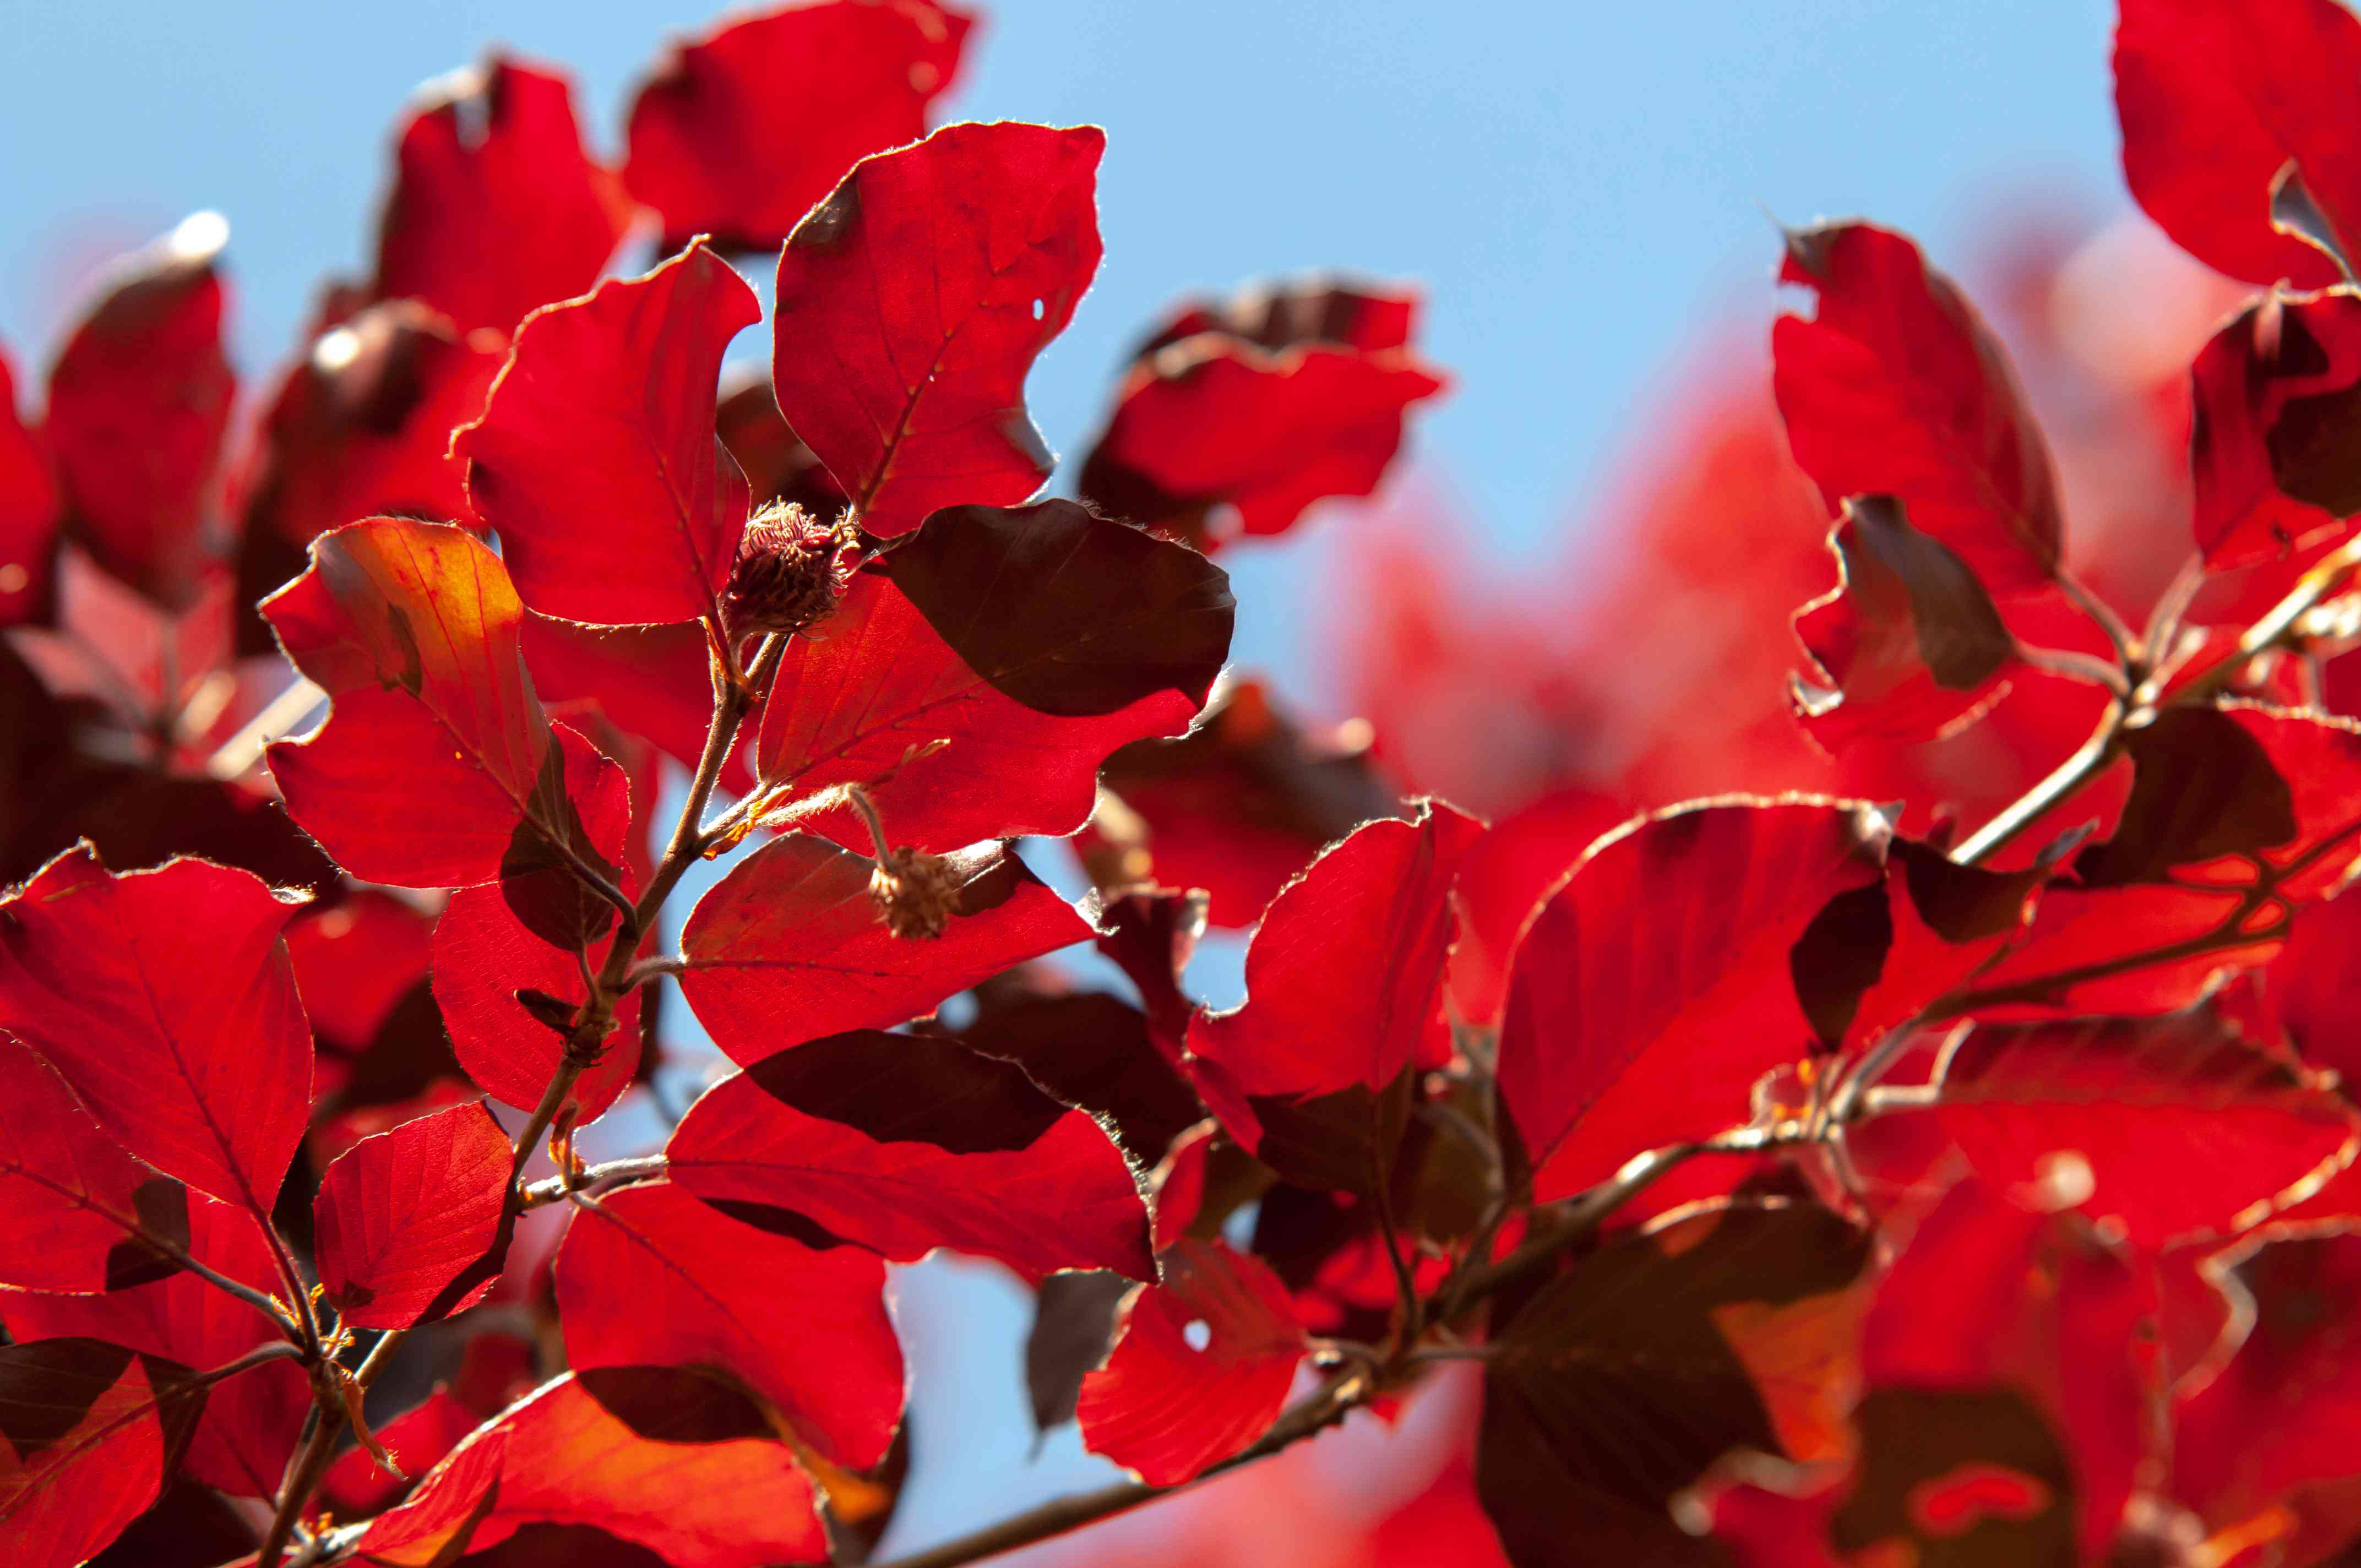 Pleached Copper European Beech tree branches with red leaves in sun closeup